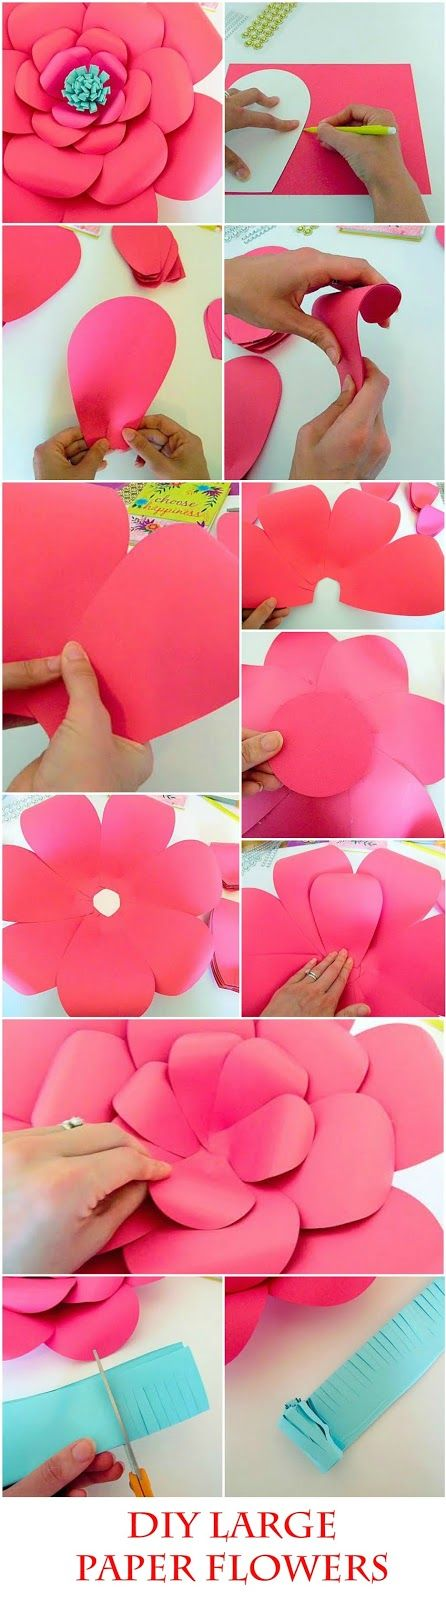 Mama's Gone Crafty: Easy Method When Building any DIY Giant Paper Flower